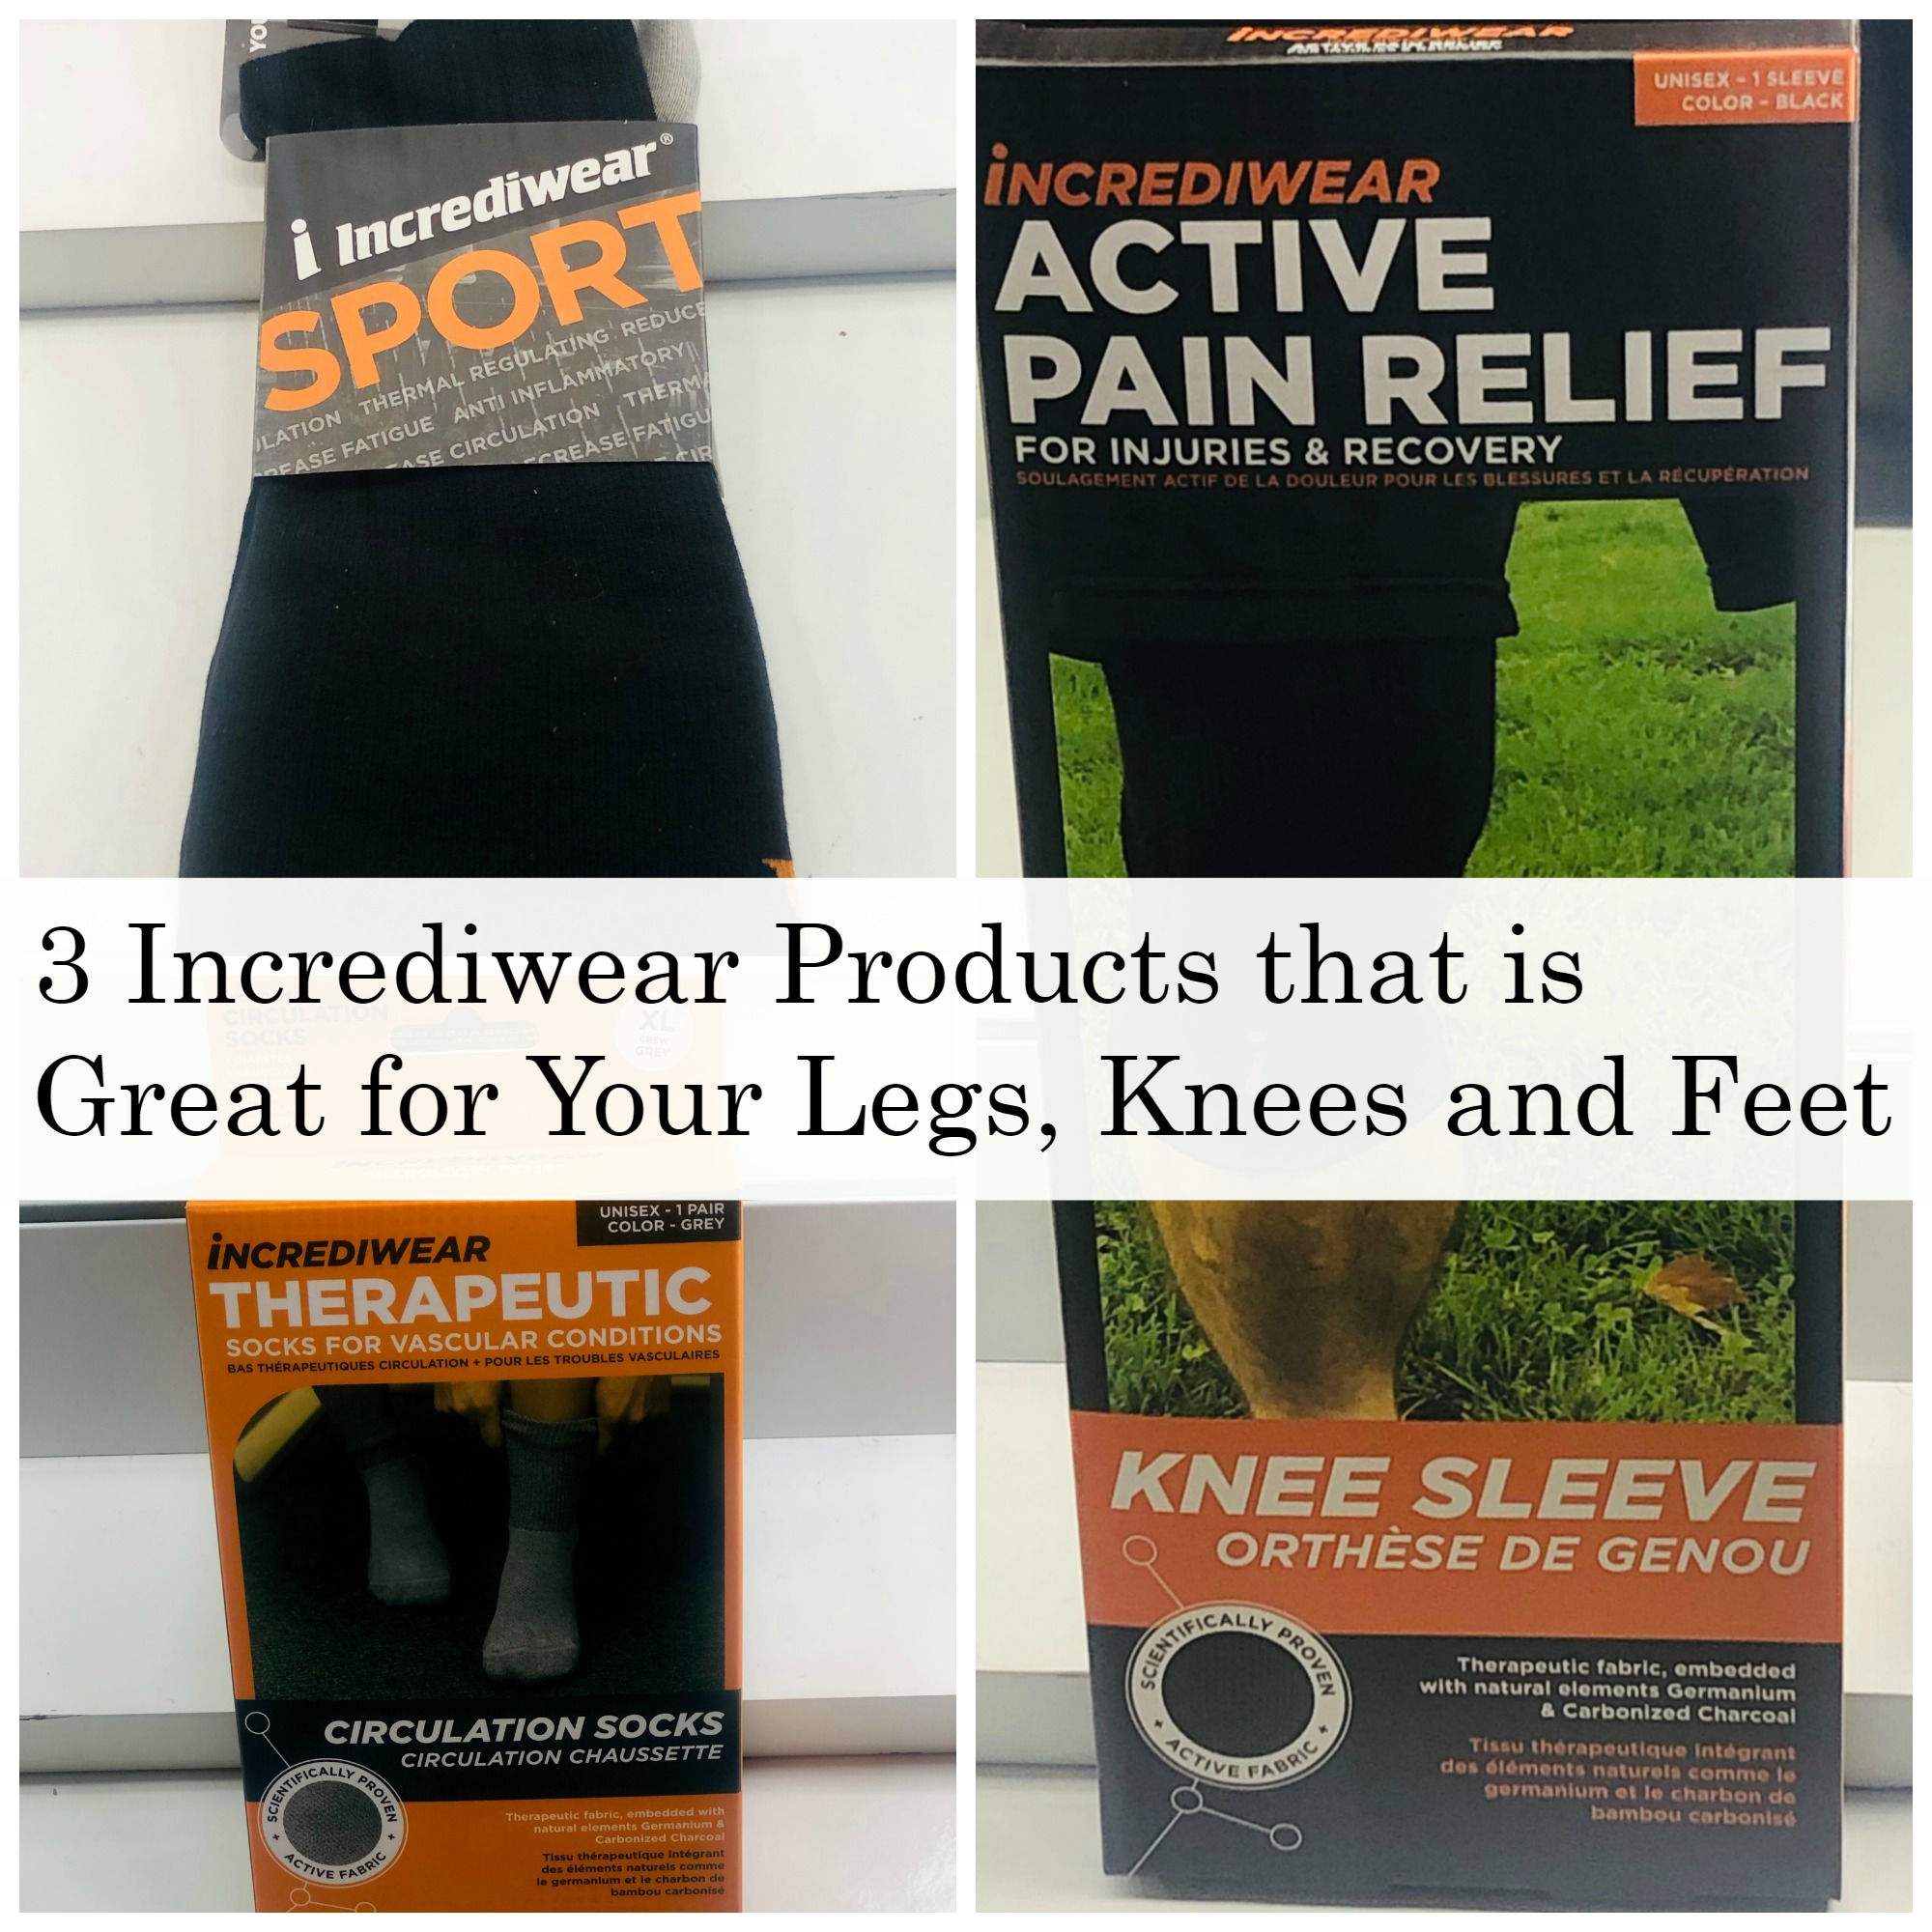 3 Incrediwear Products that is Great for Your Legs, Knees and Feet